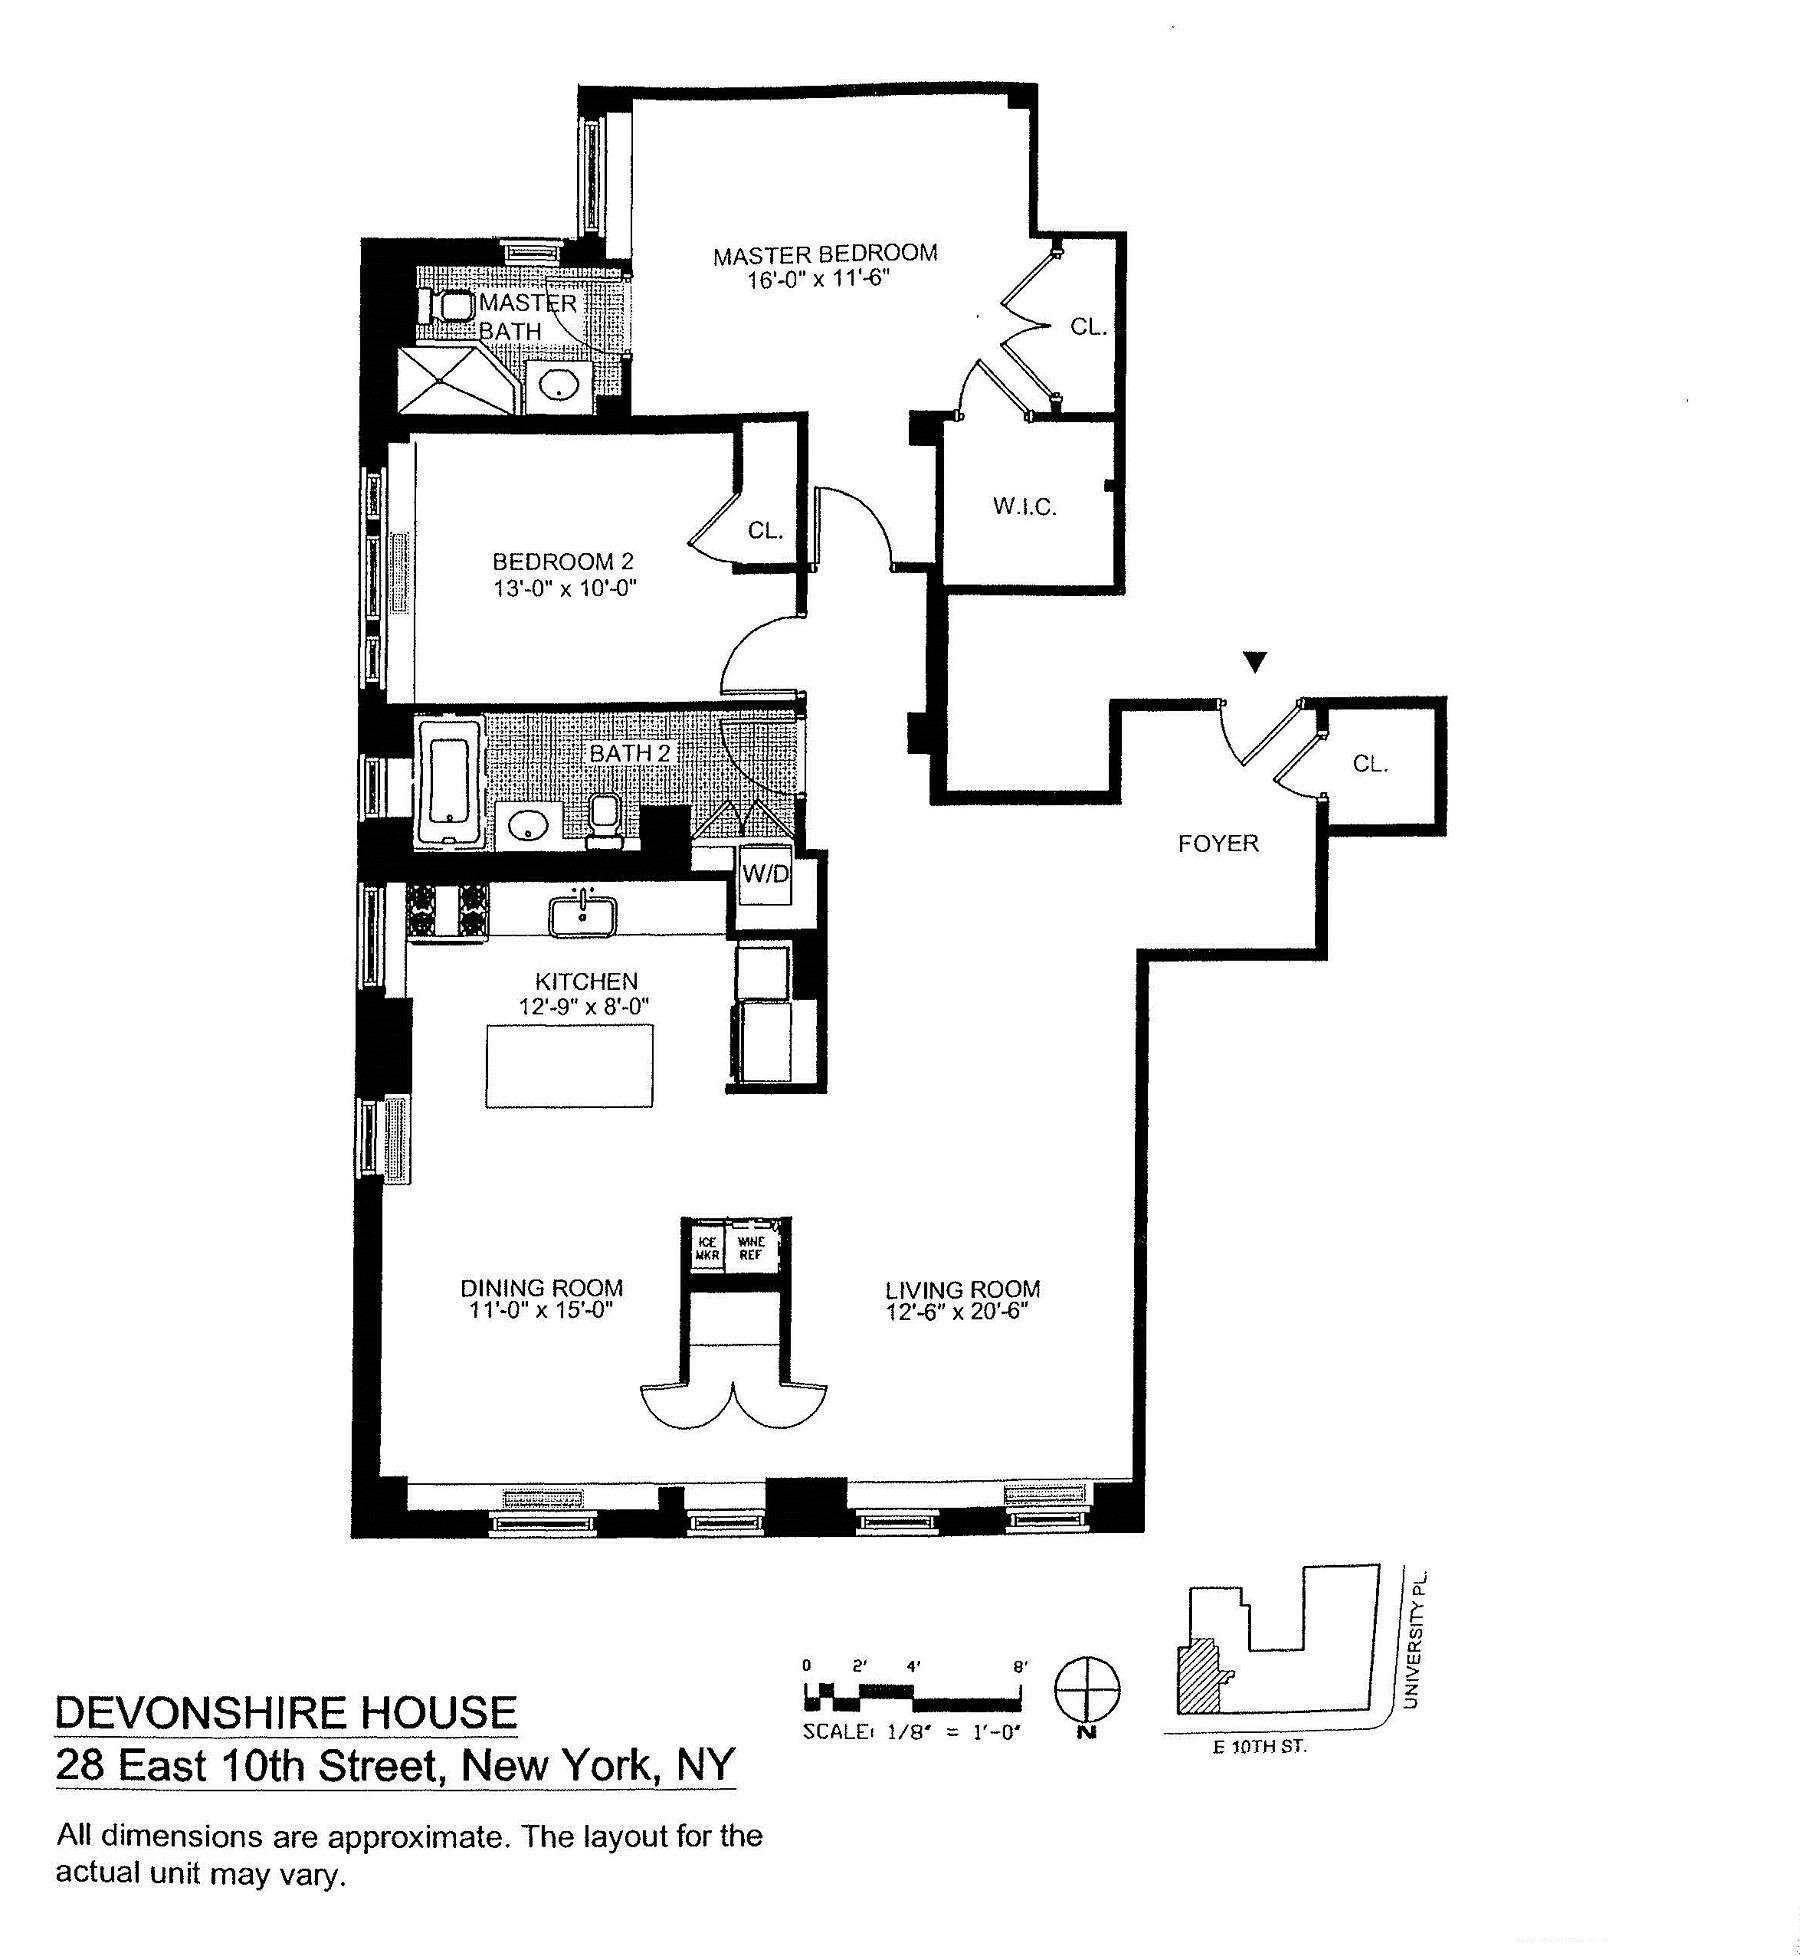 Devonshire house 28 east 10th st luxury apartments for Devonshire home design garden city ny